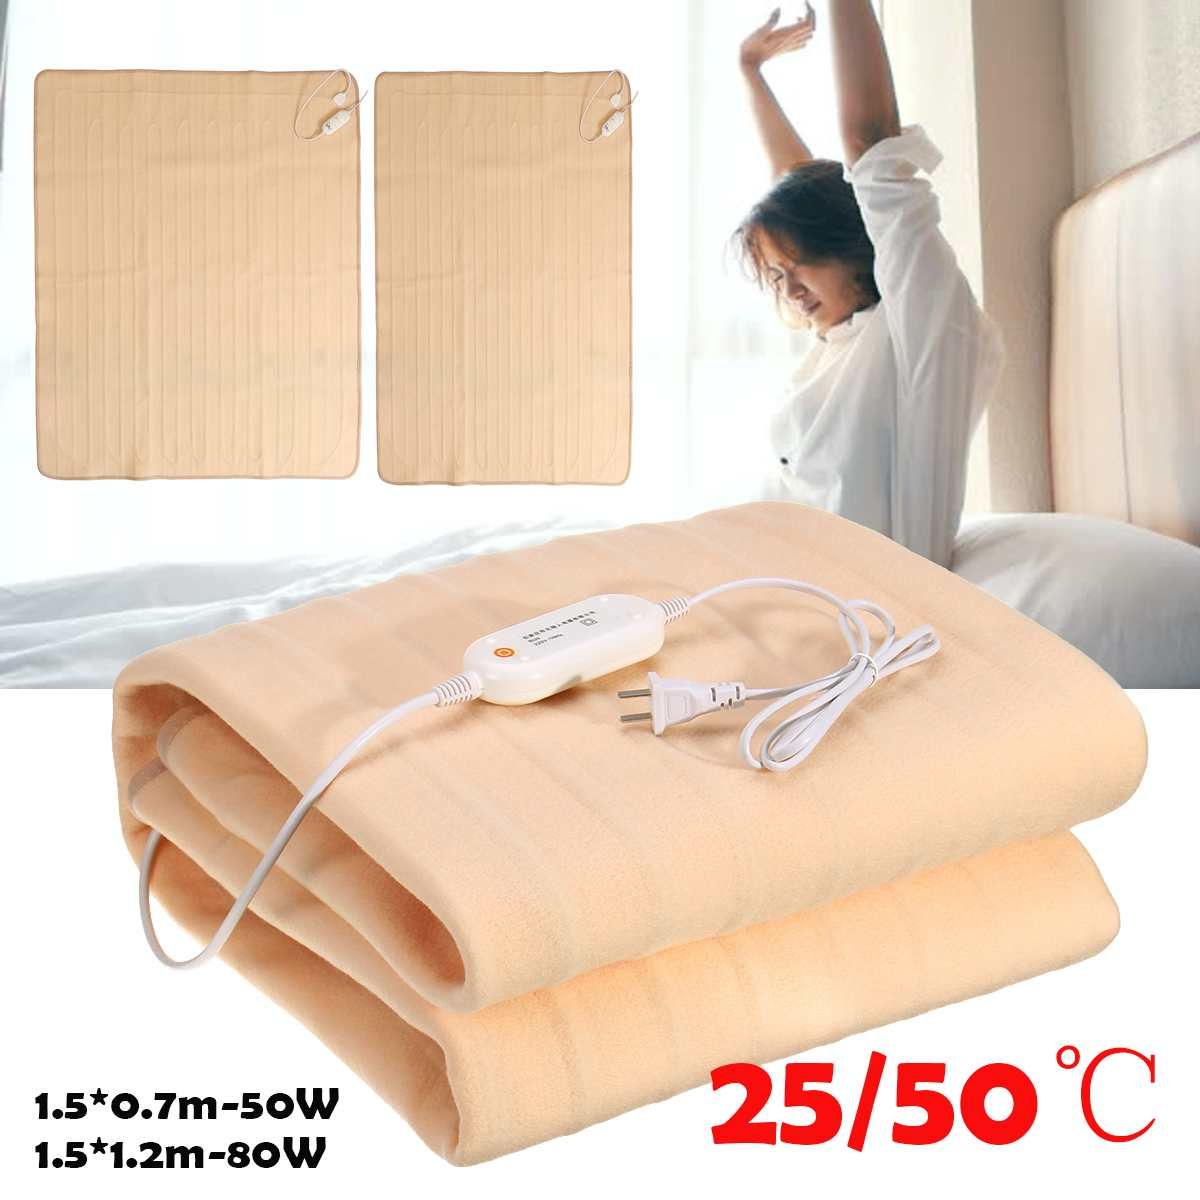 220V 2 Mode Waterproof Electric Heating Pad Body Winter Warmer Mat Bed Blanket Bed Heater